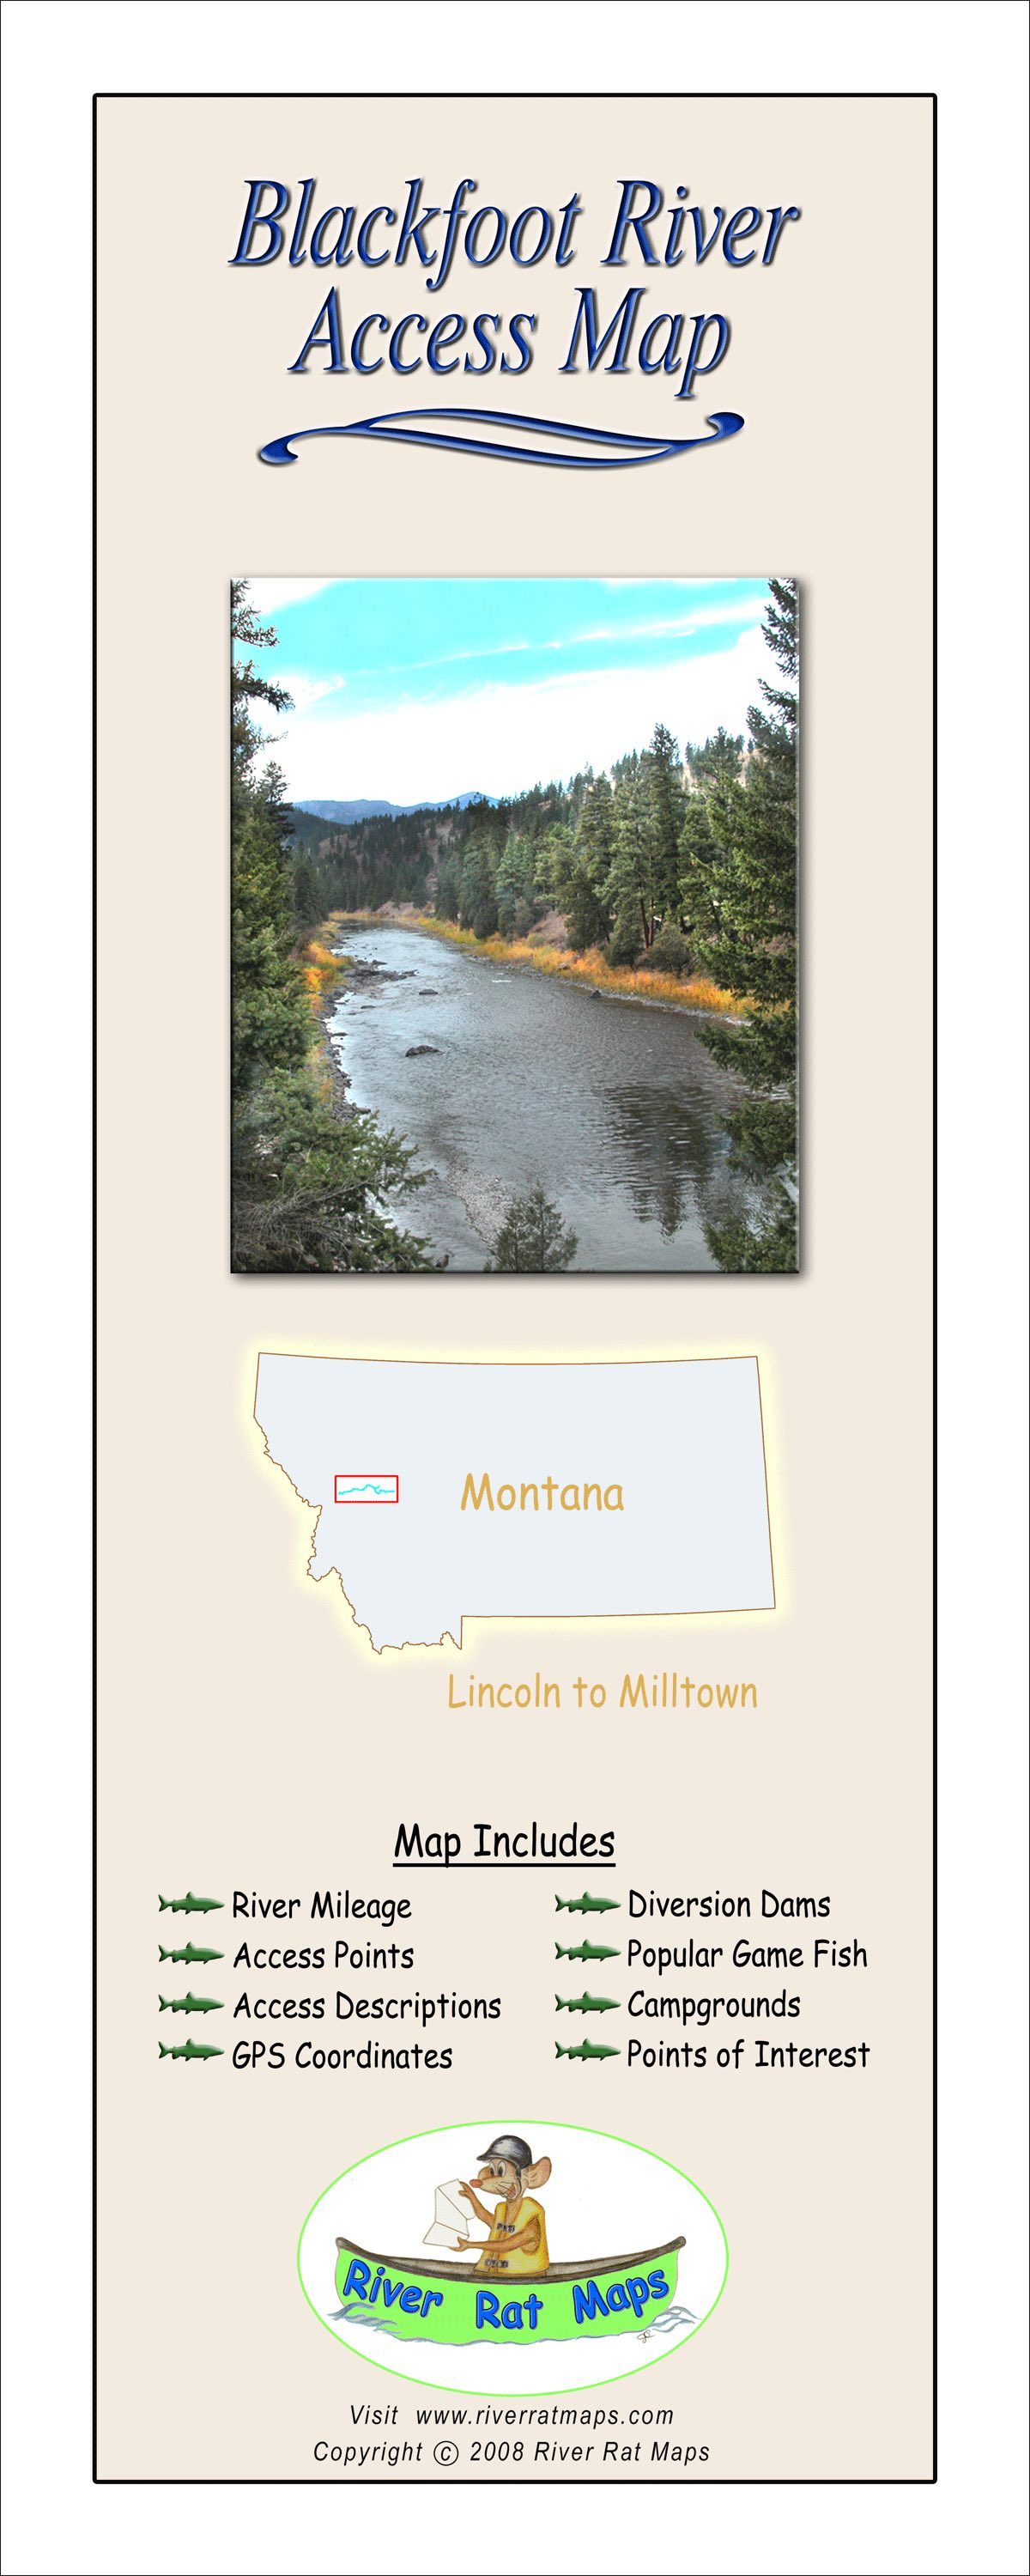 Blackfoot River Map From Lincoln To Milltown By River Rat Maps